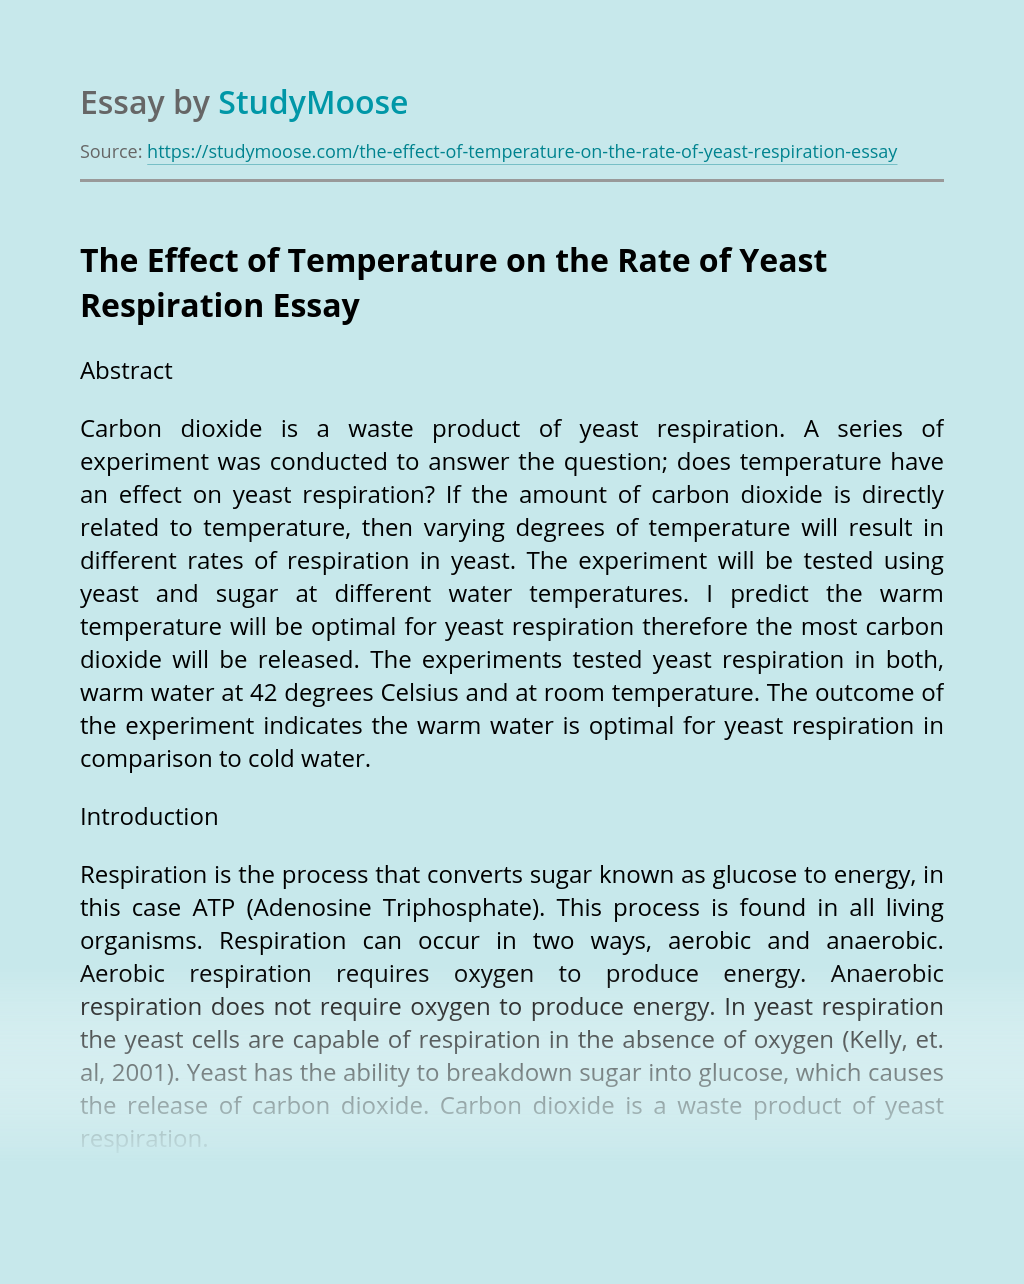 The Effect of Temperature on the Rate of Yeast Respiration